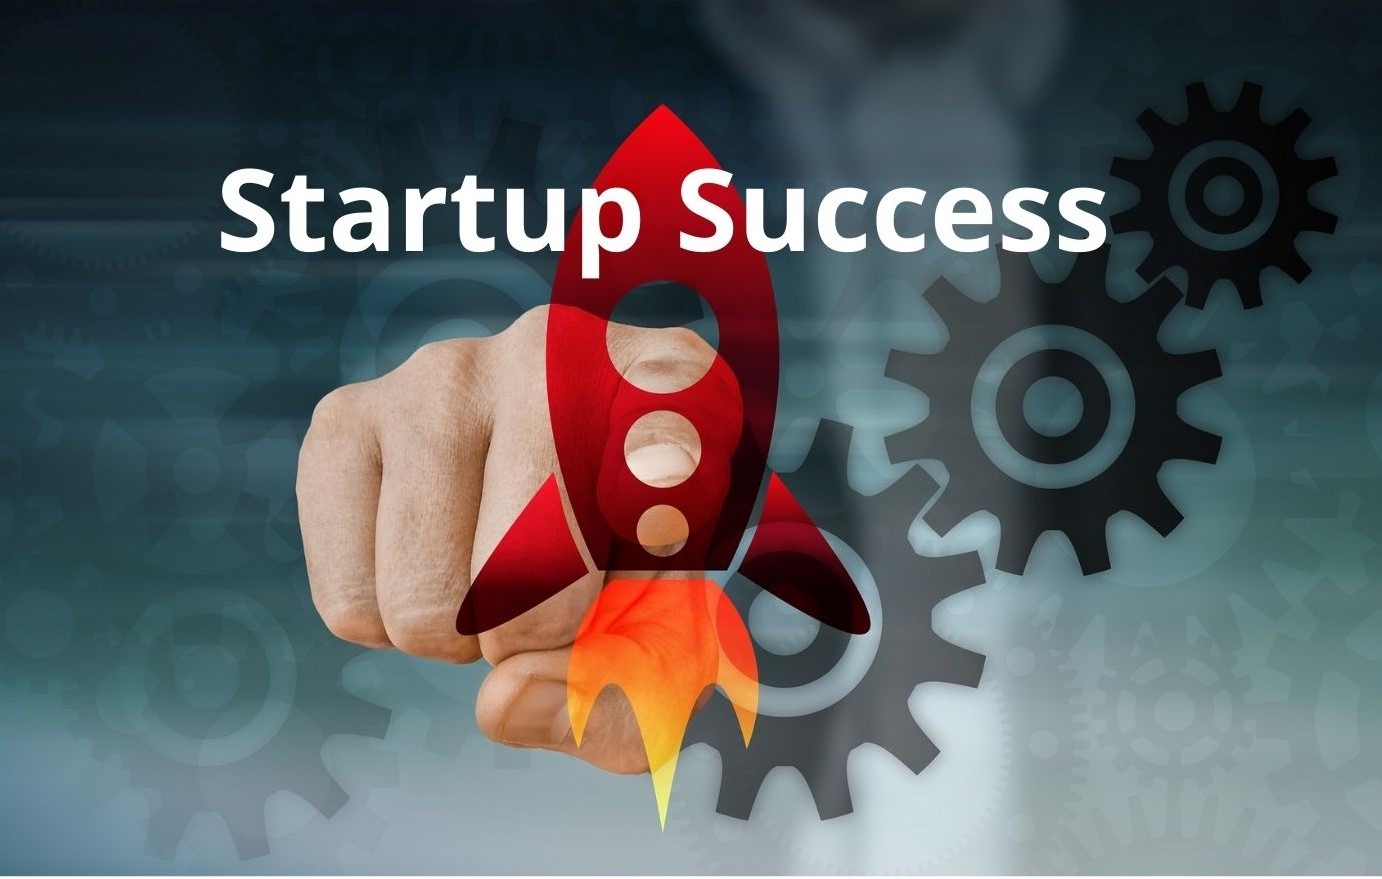 4 Fabulous Facts To Run a Successful Startup